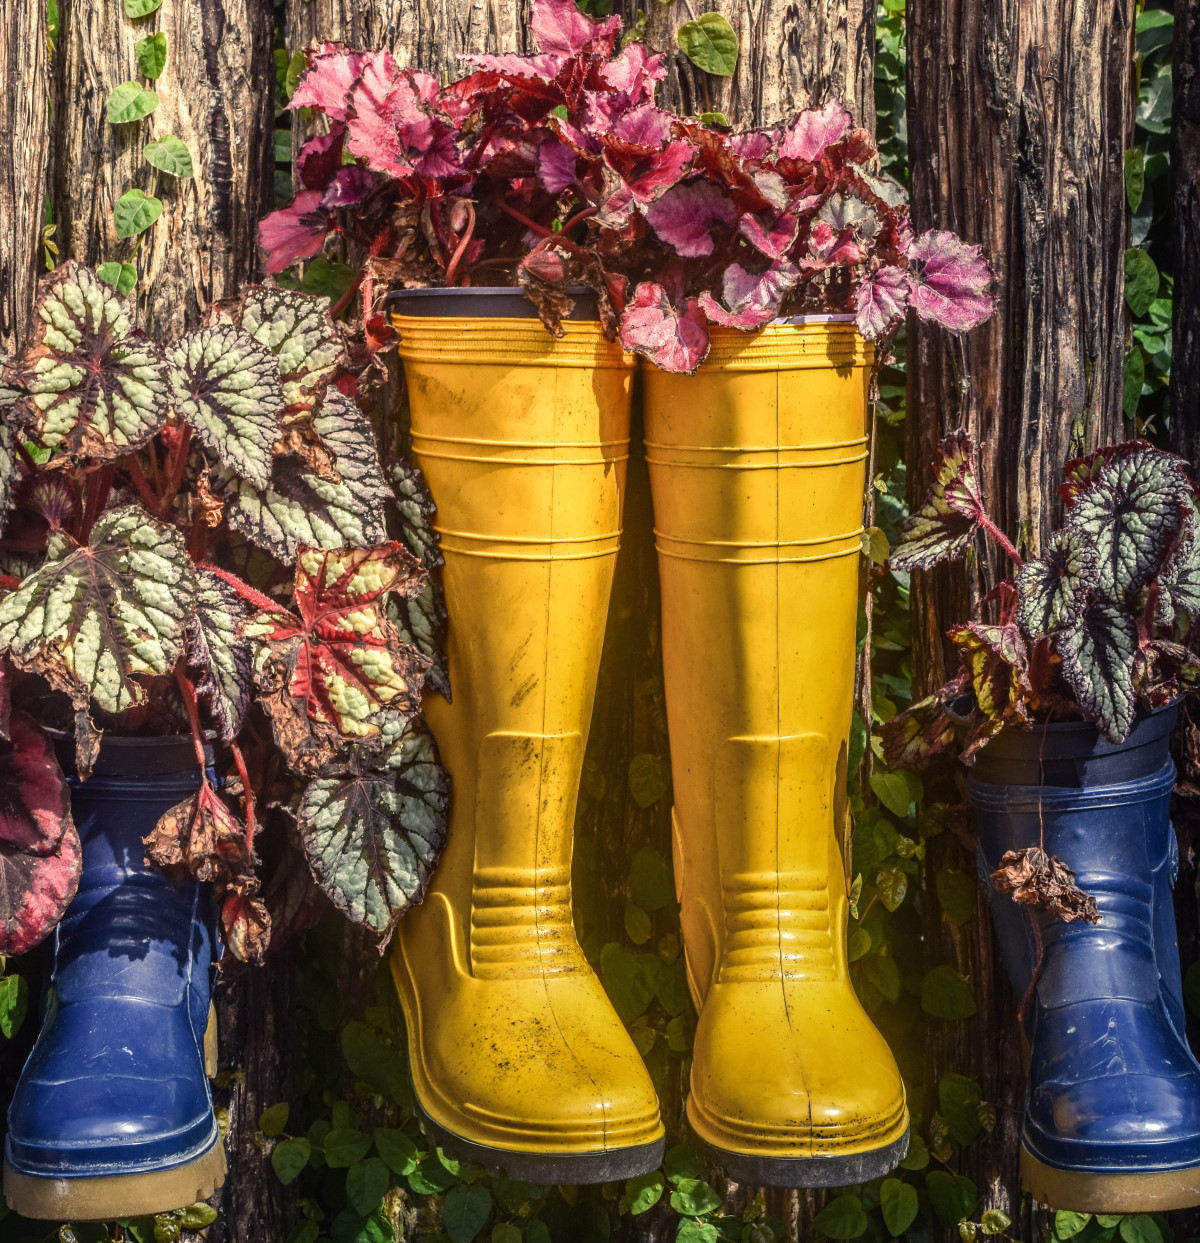 Flowers planted in Wellington boots